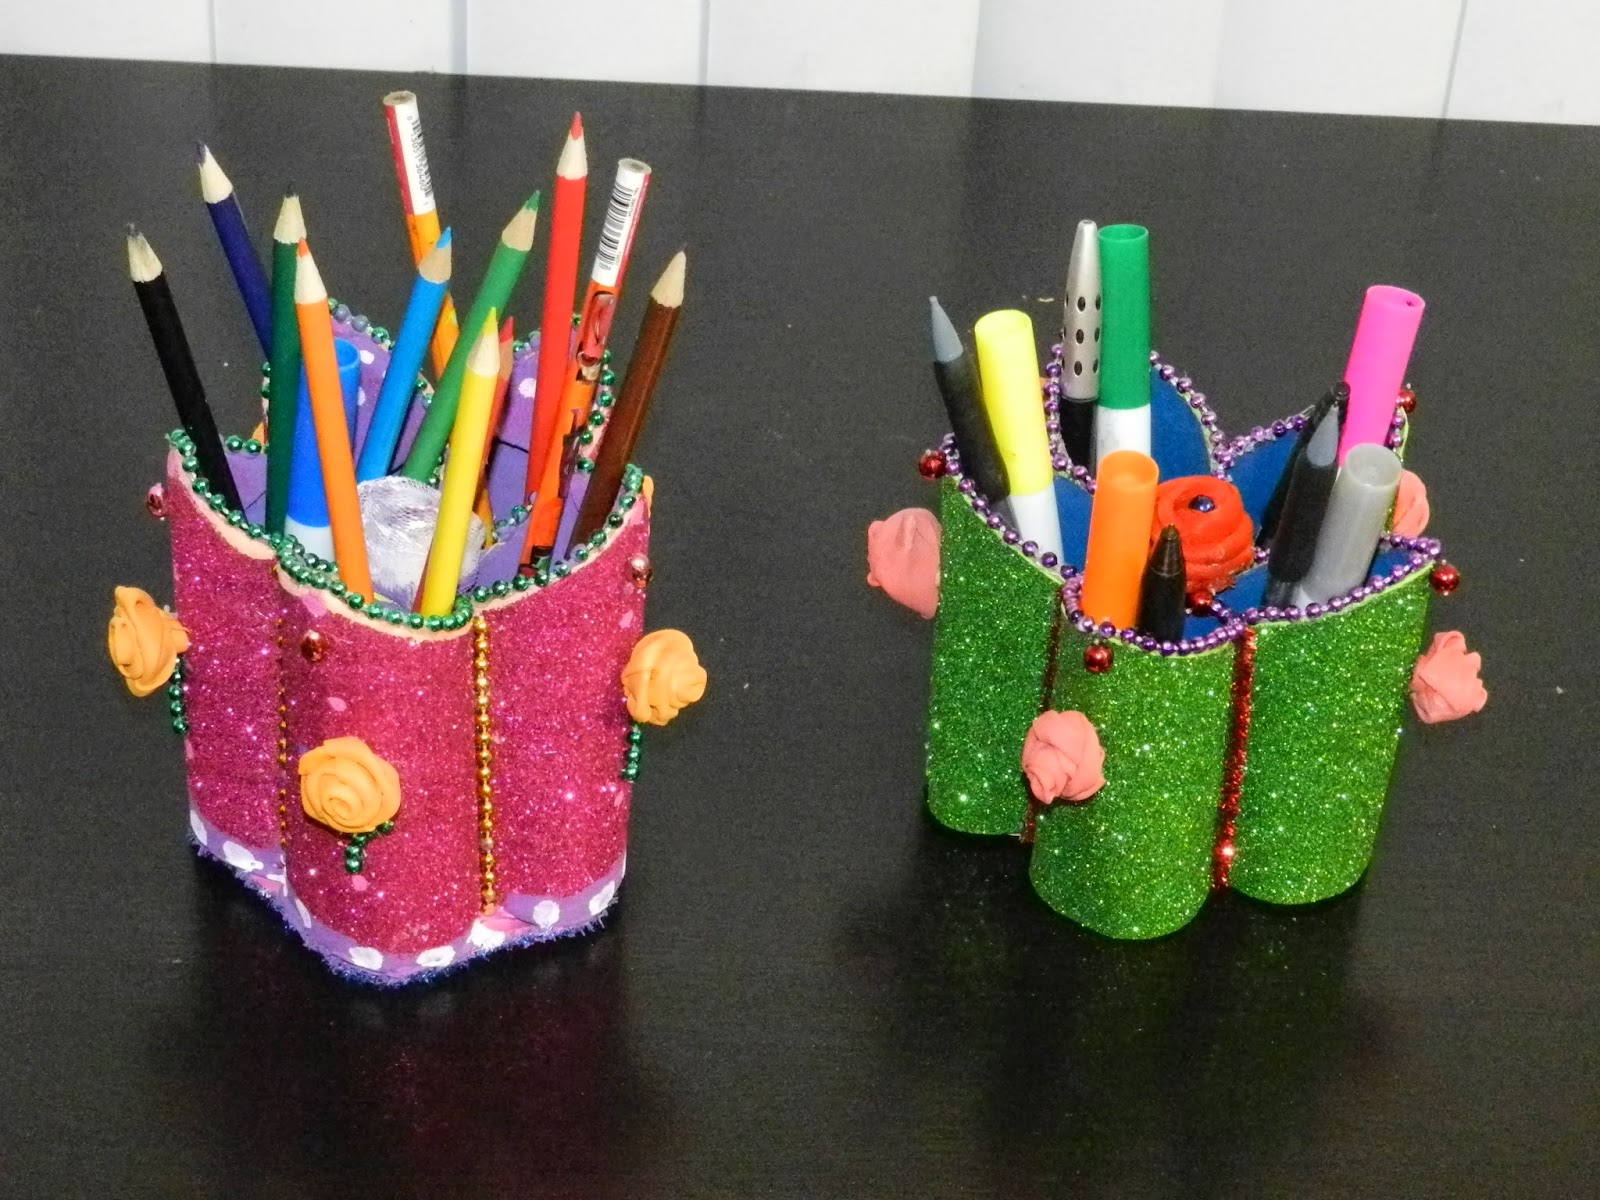 Creative diy crafts flower shaped pen stand holder with for Uses waste material art craft